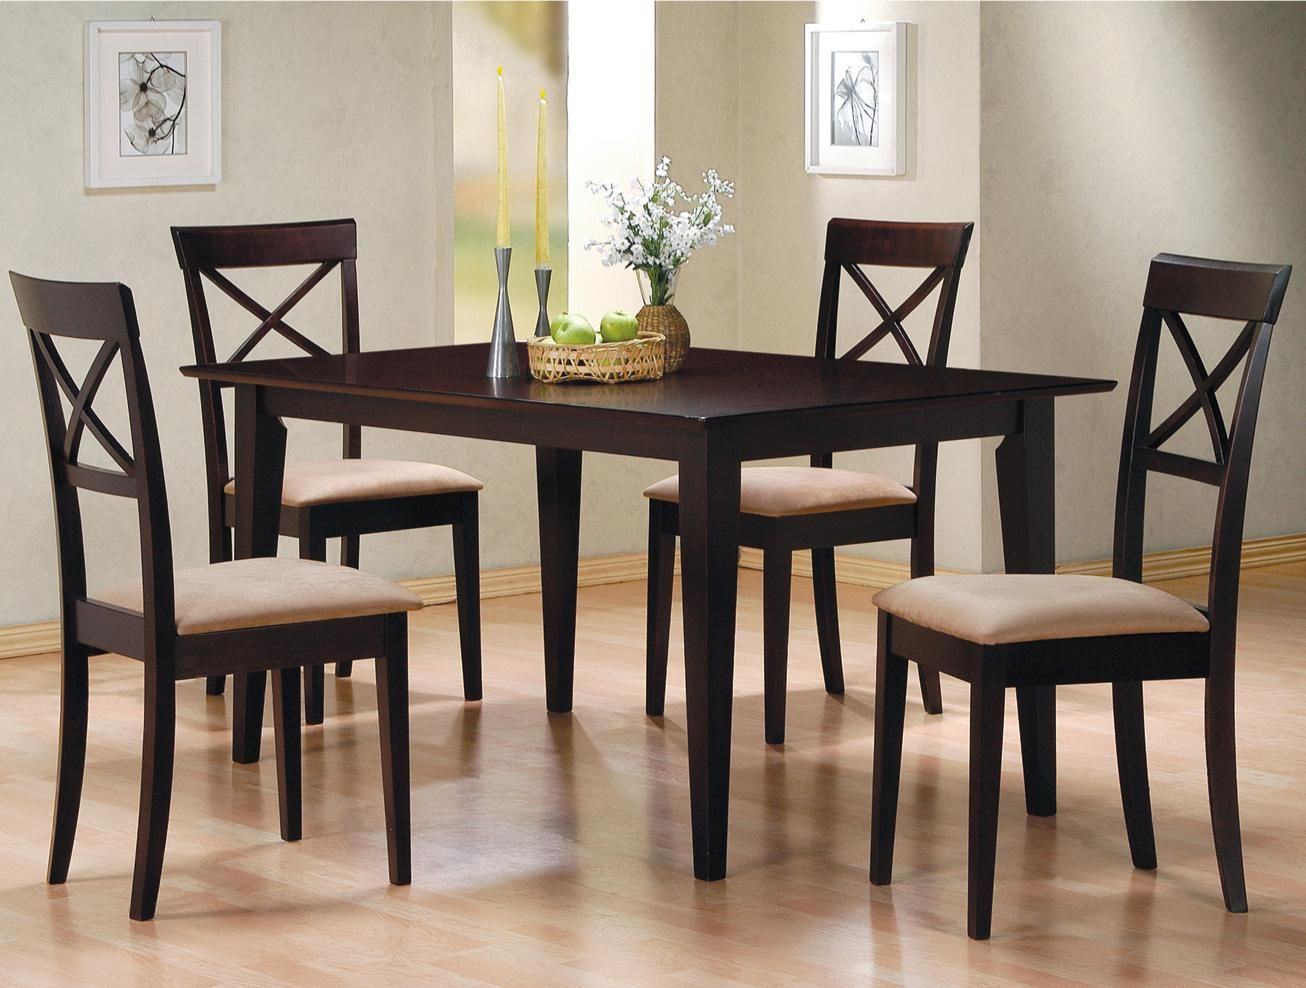 Miranda Cross Cappuccino Wood Dining Table Set Steal A